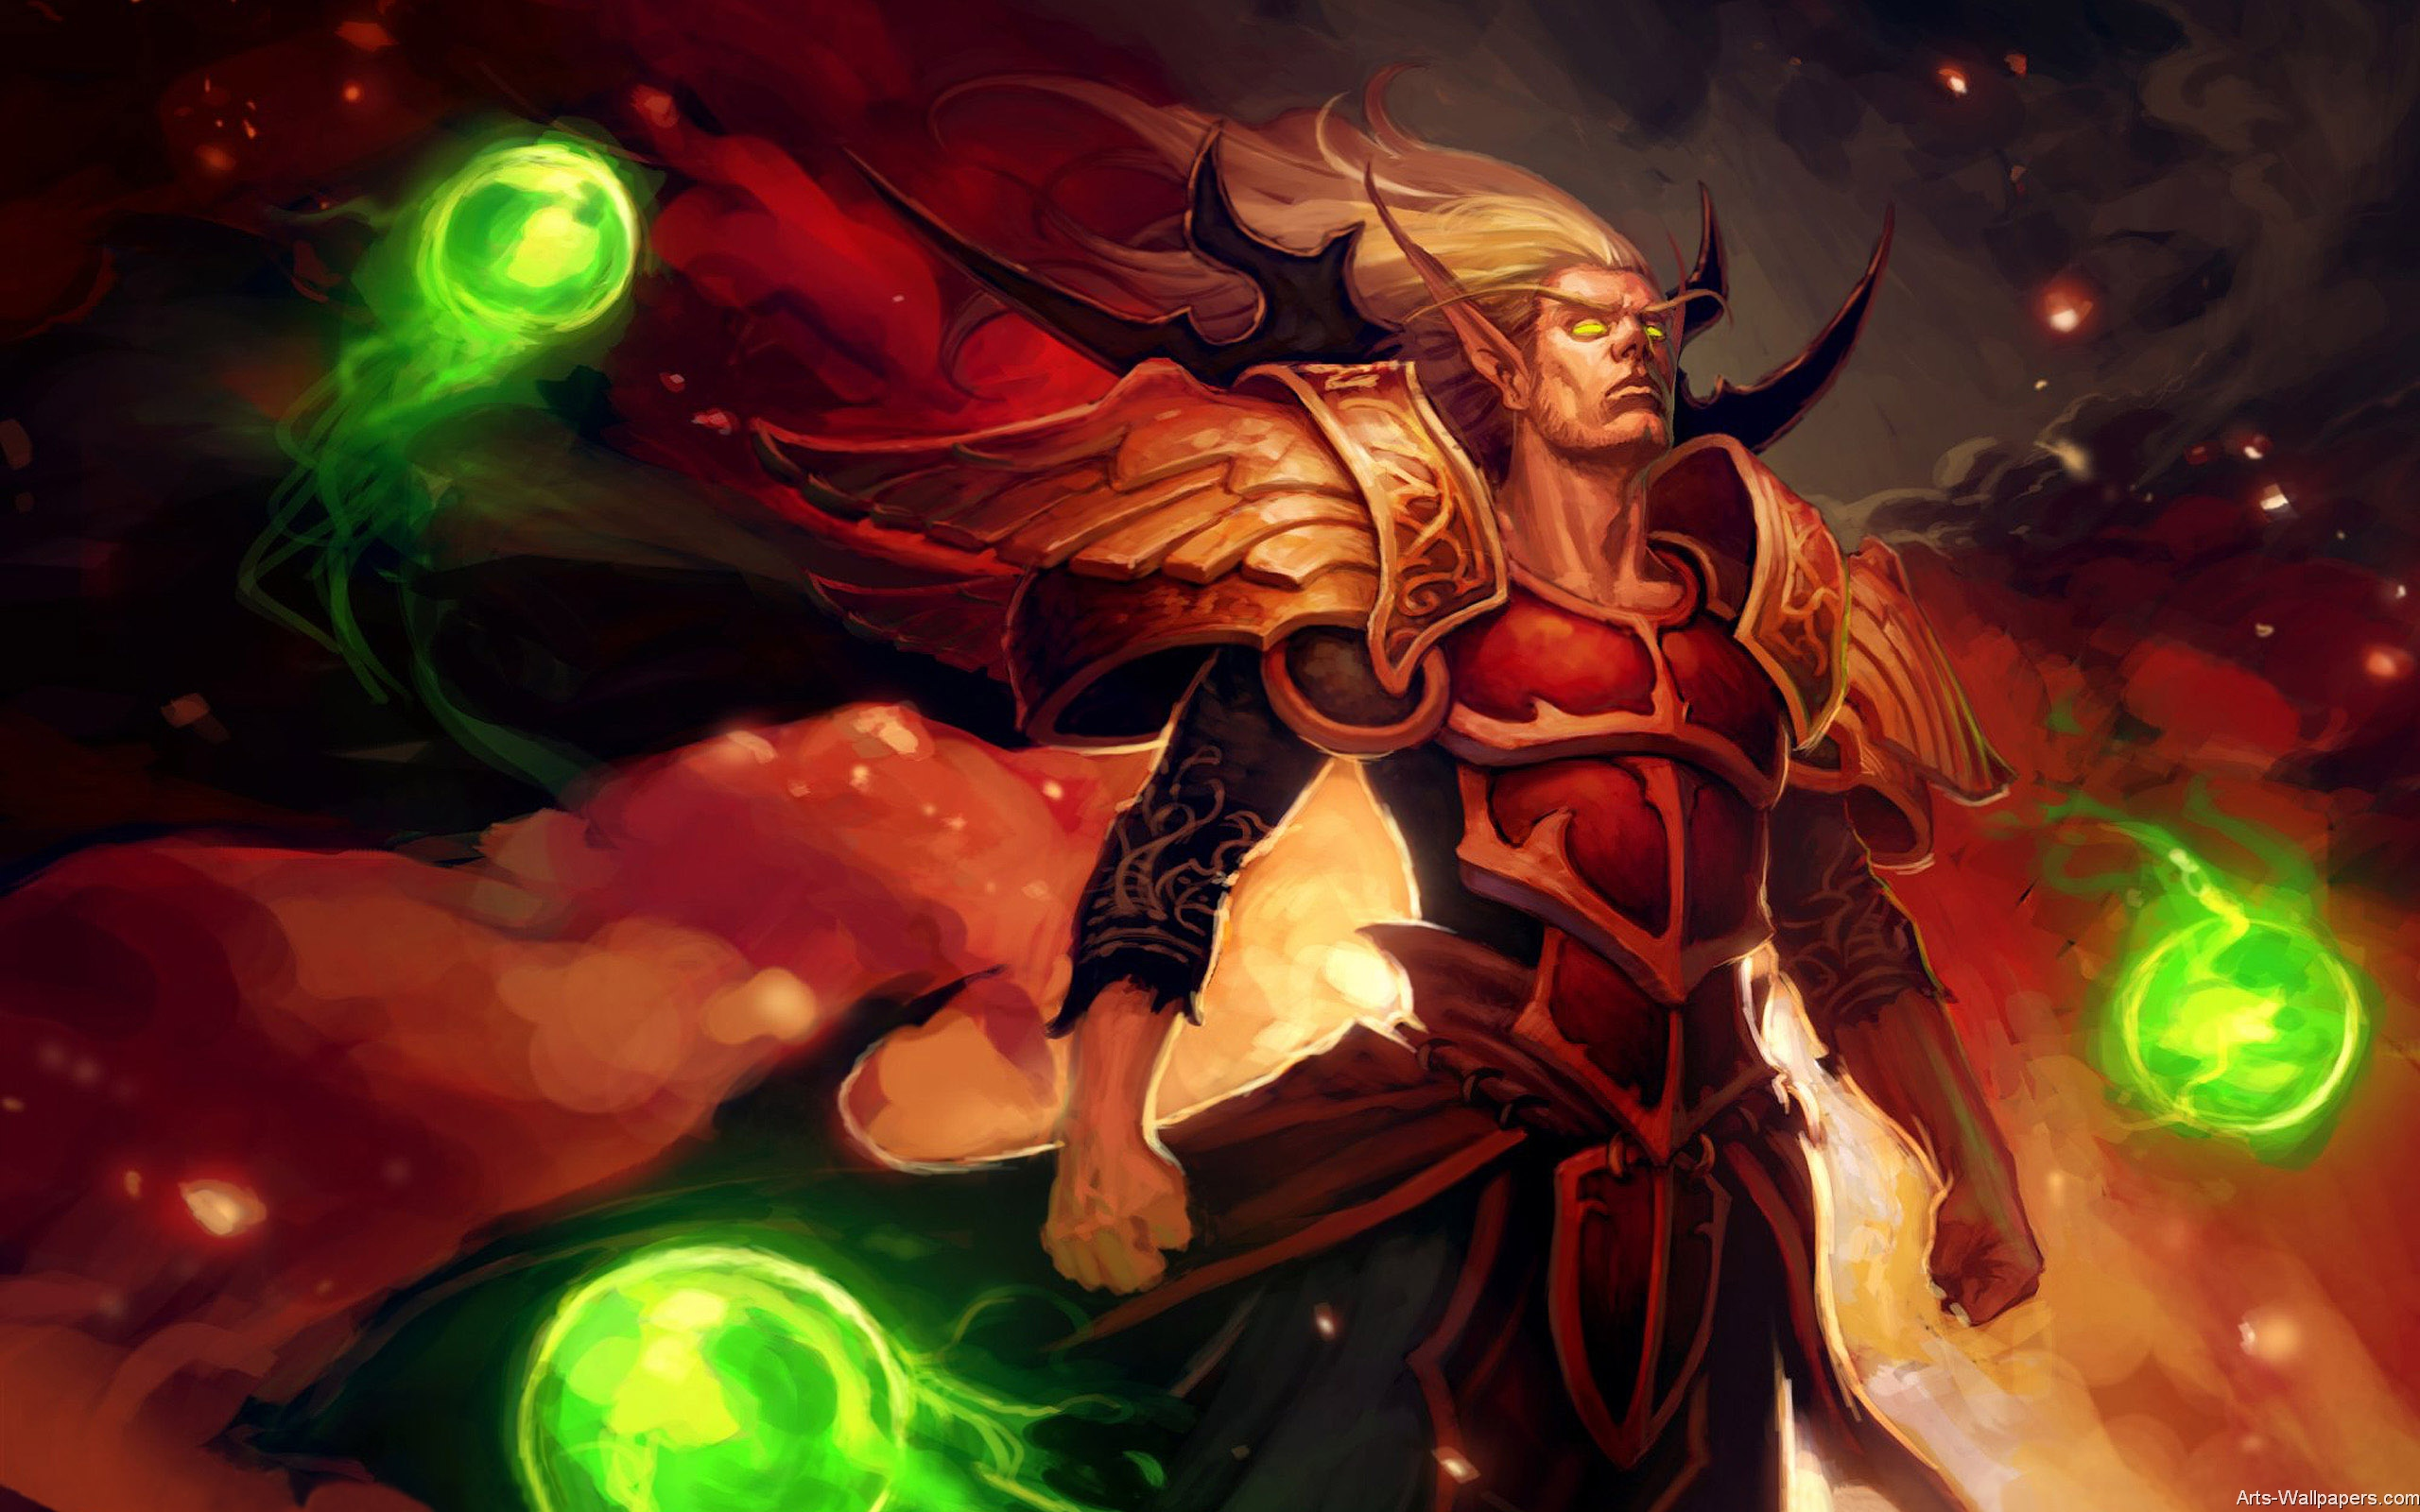 World of Warcraft HD Wallpapers 2560 x 1600 2560x1600